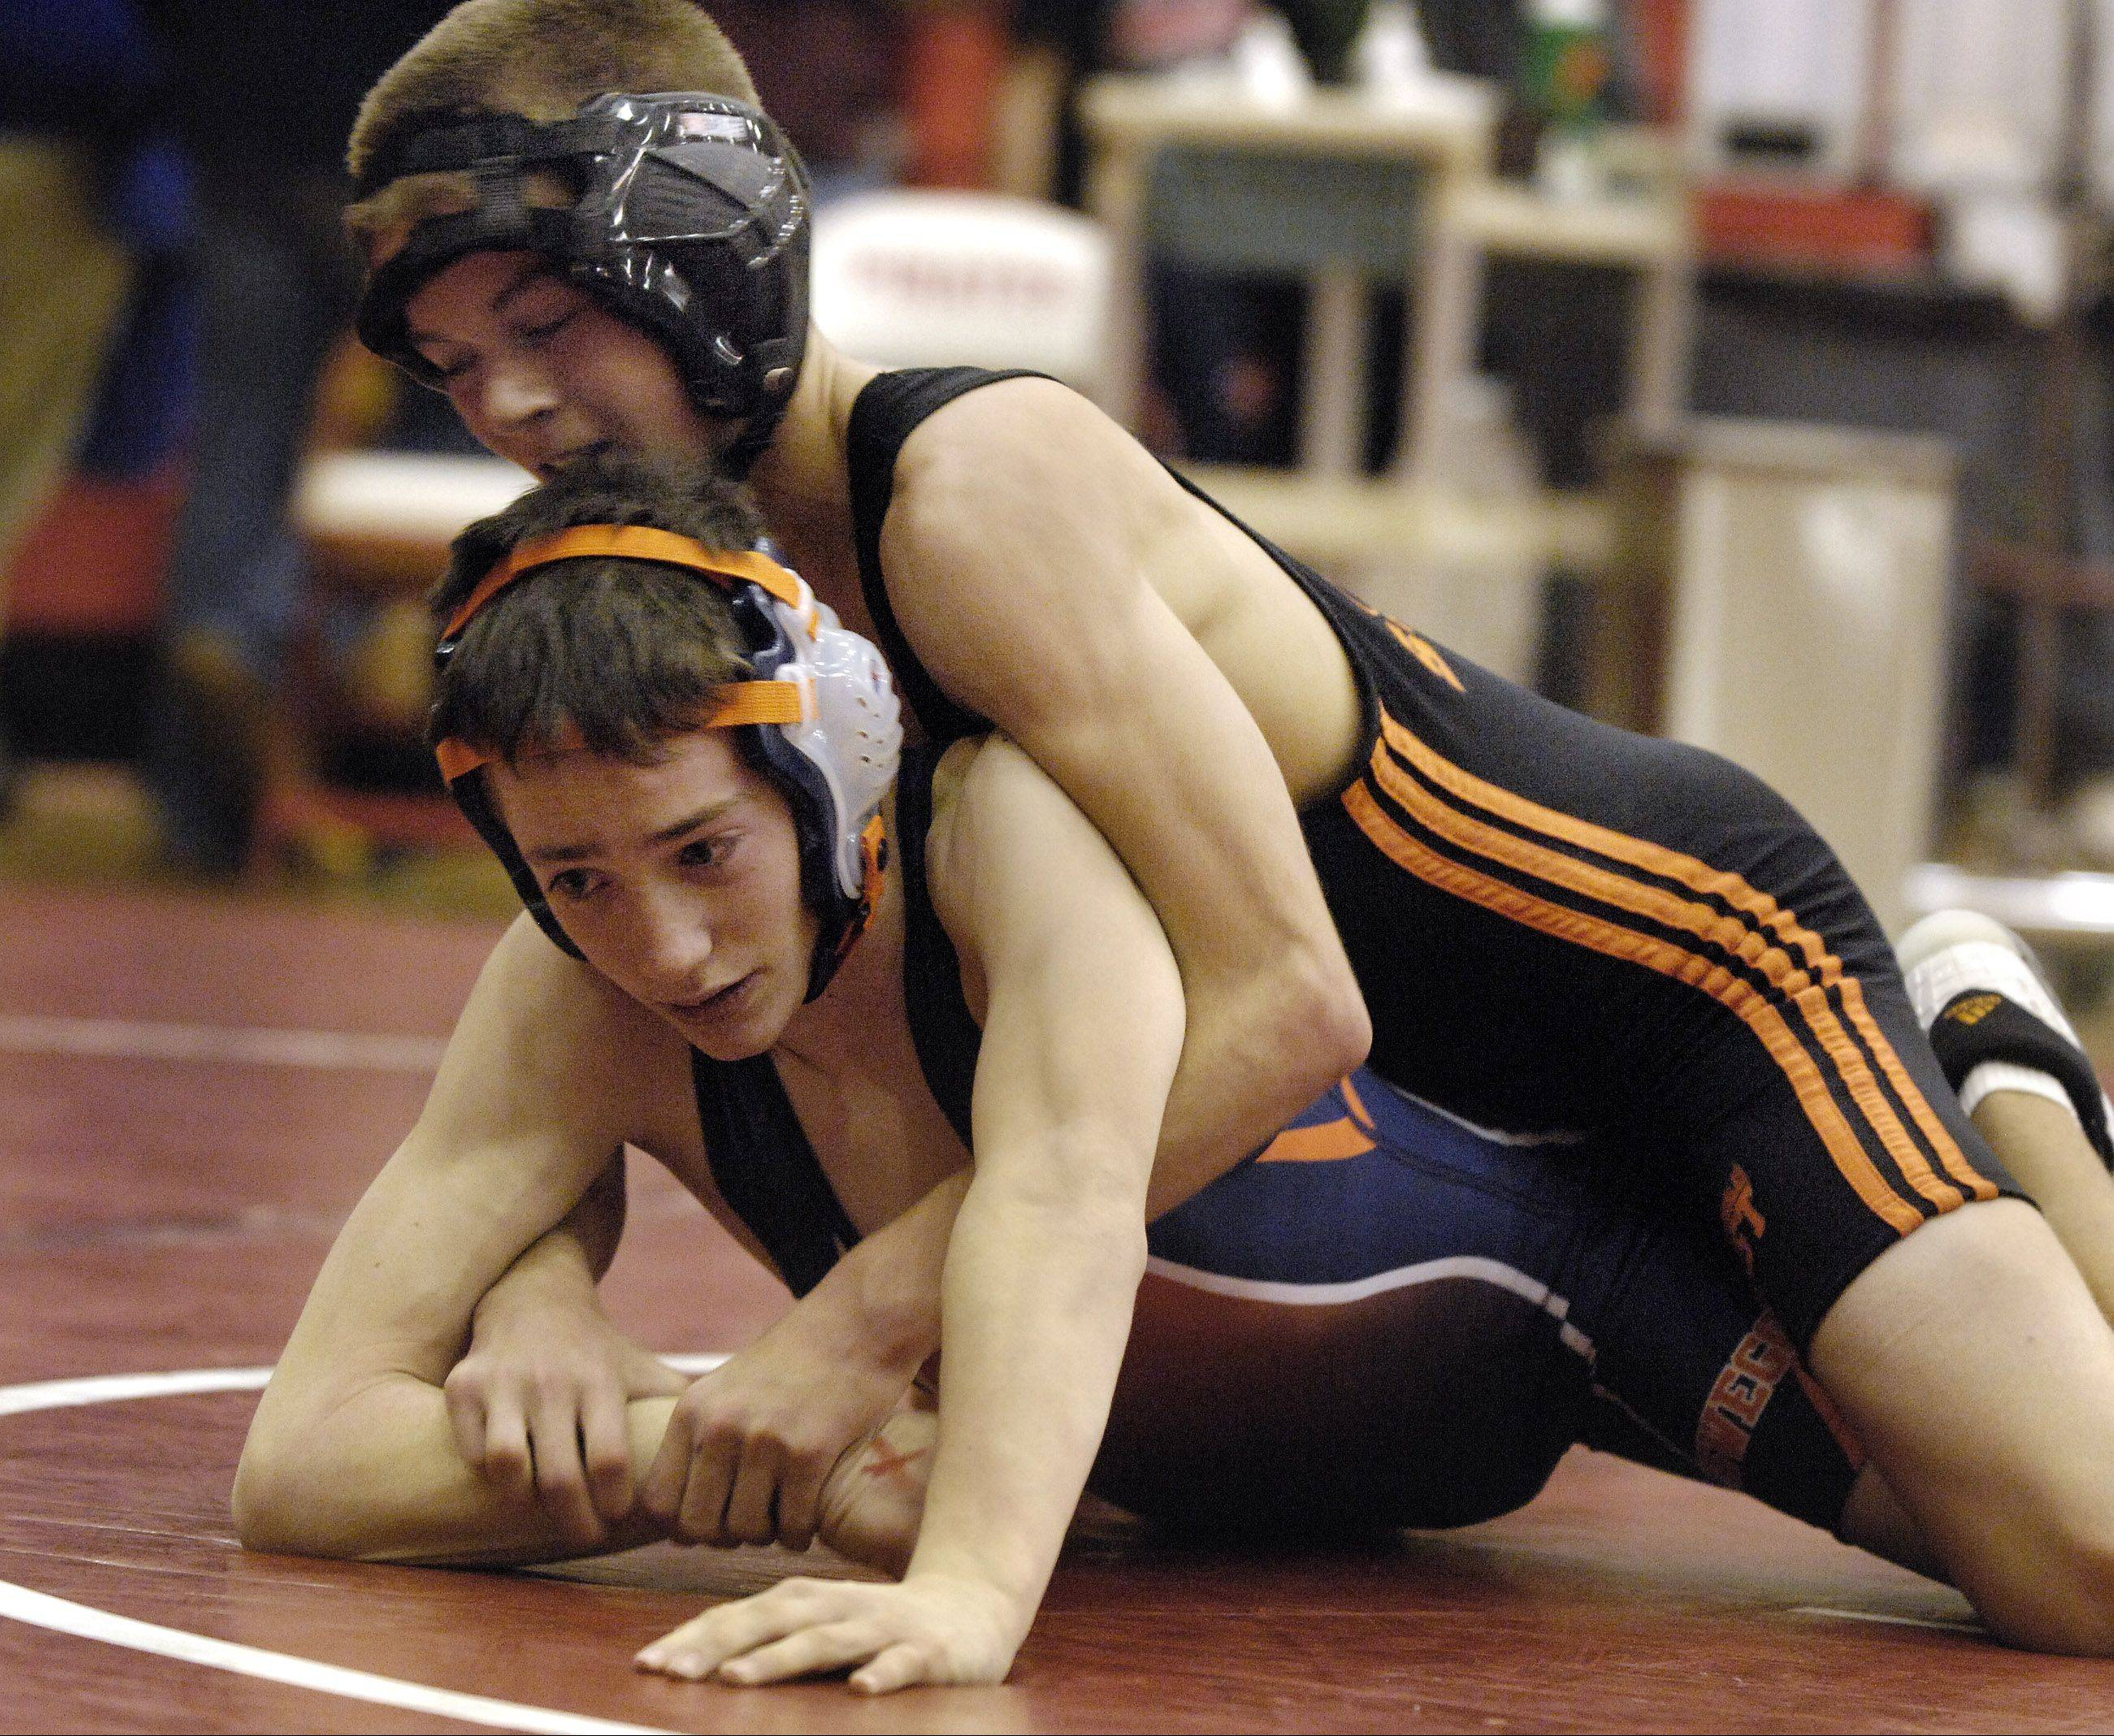 St. Charles East's Brad Kearbey, top, pictured earlier in his high school career, is up to 160 pounds where he has a 20-7 record for the 15-